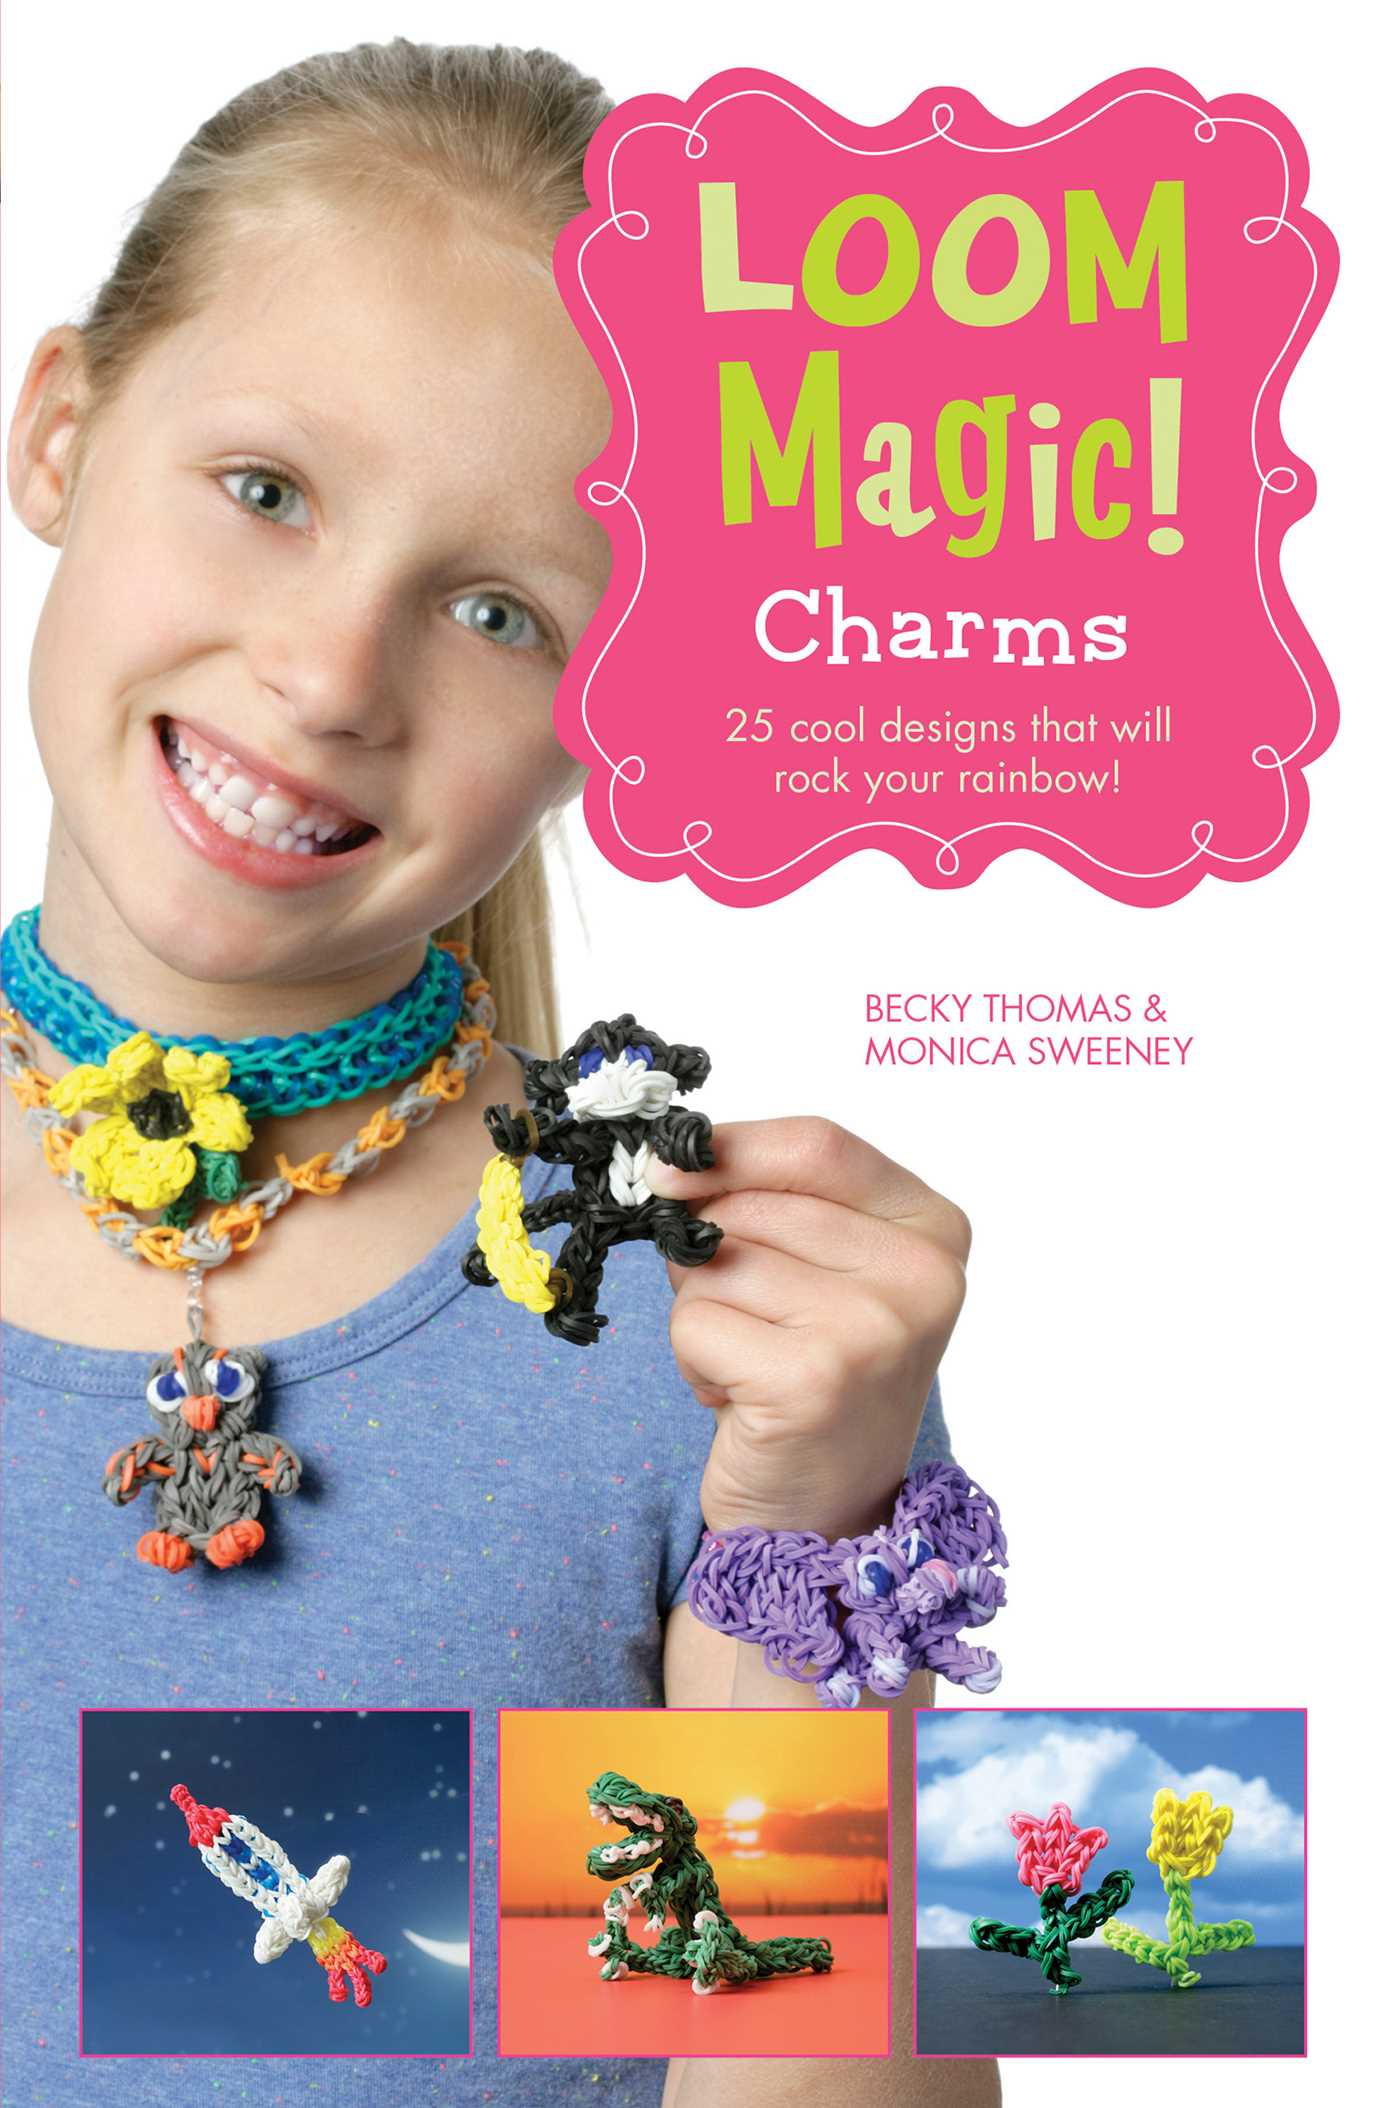 Loom magic charms 25 cool designs that will rock your rainbow book cover image jpg loom magic charms 25 cool designs that will rock your rainbow ebook 9781471124532 fandeluxe Choice Image